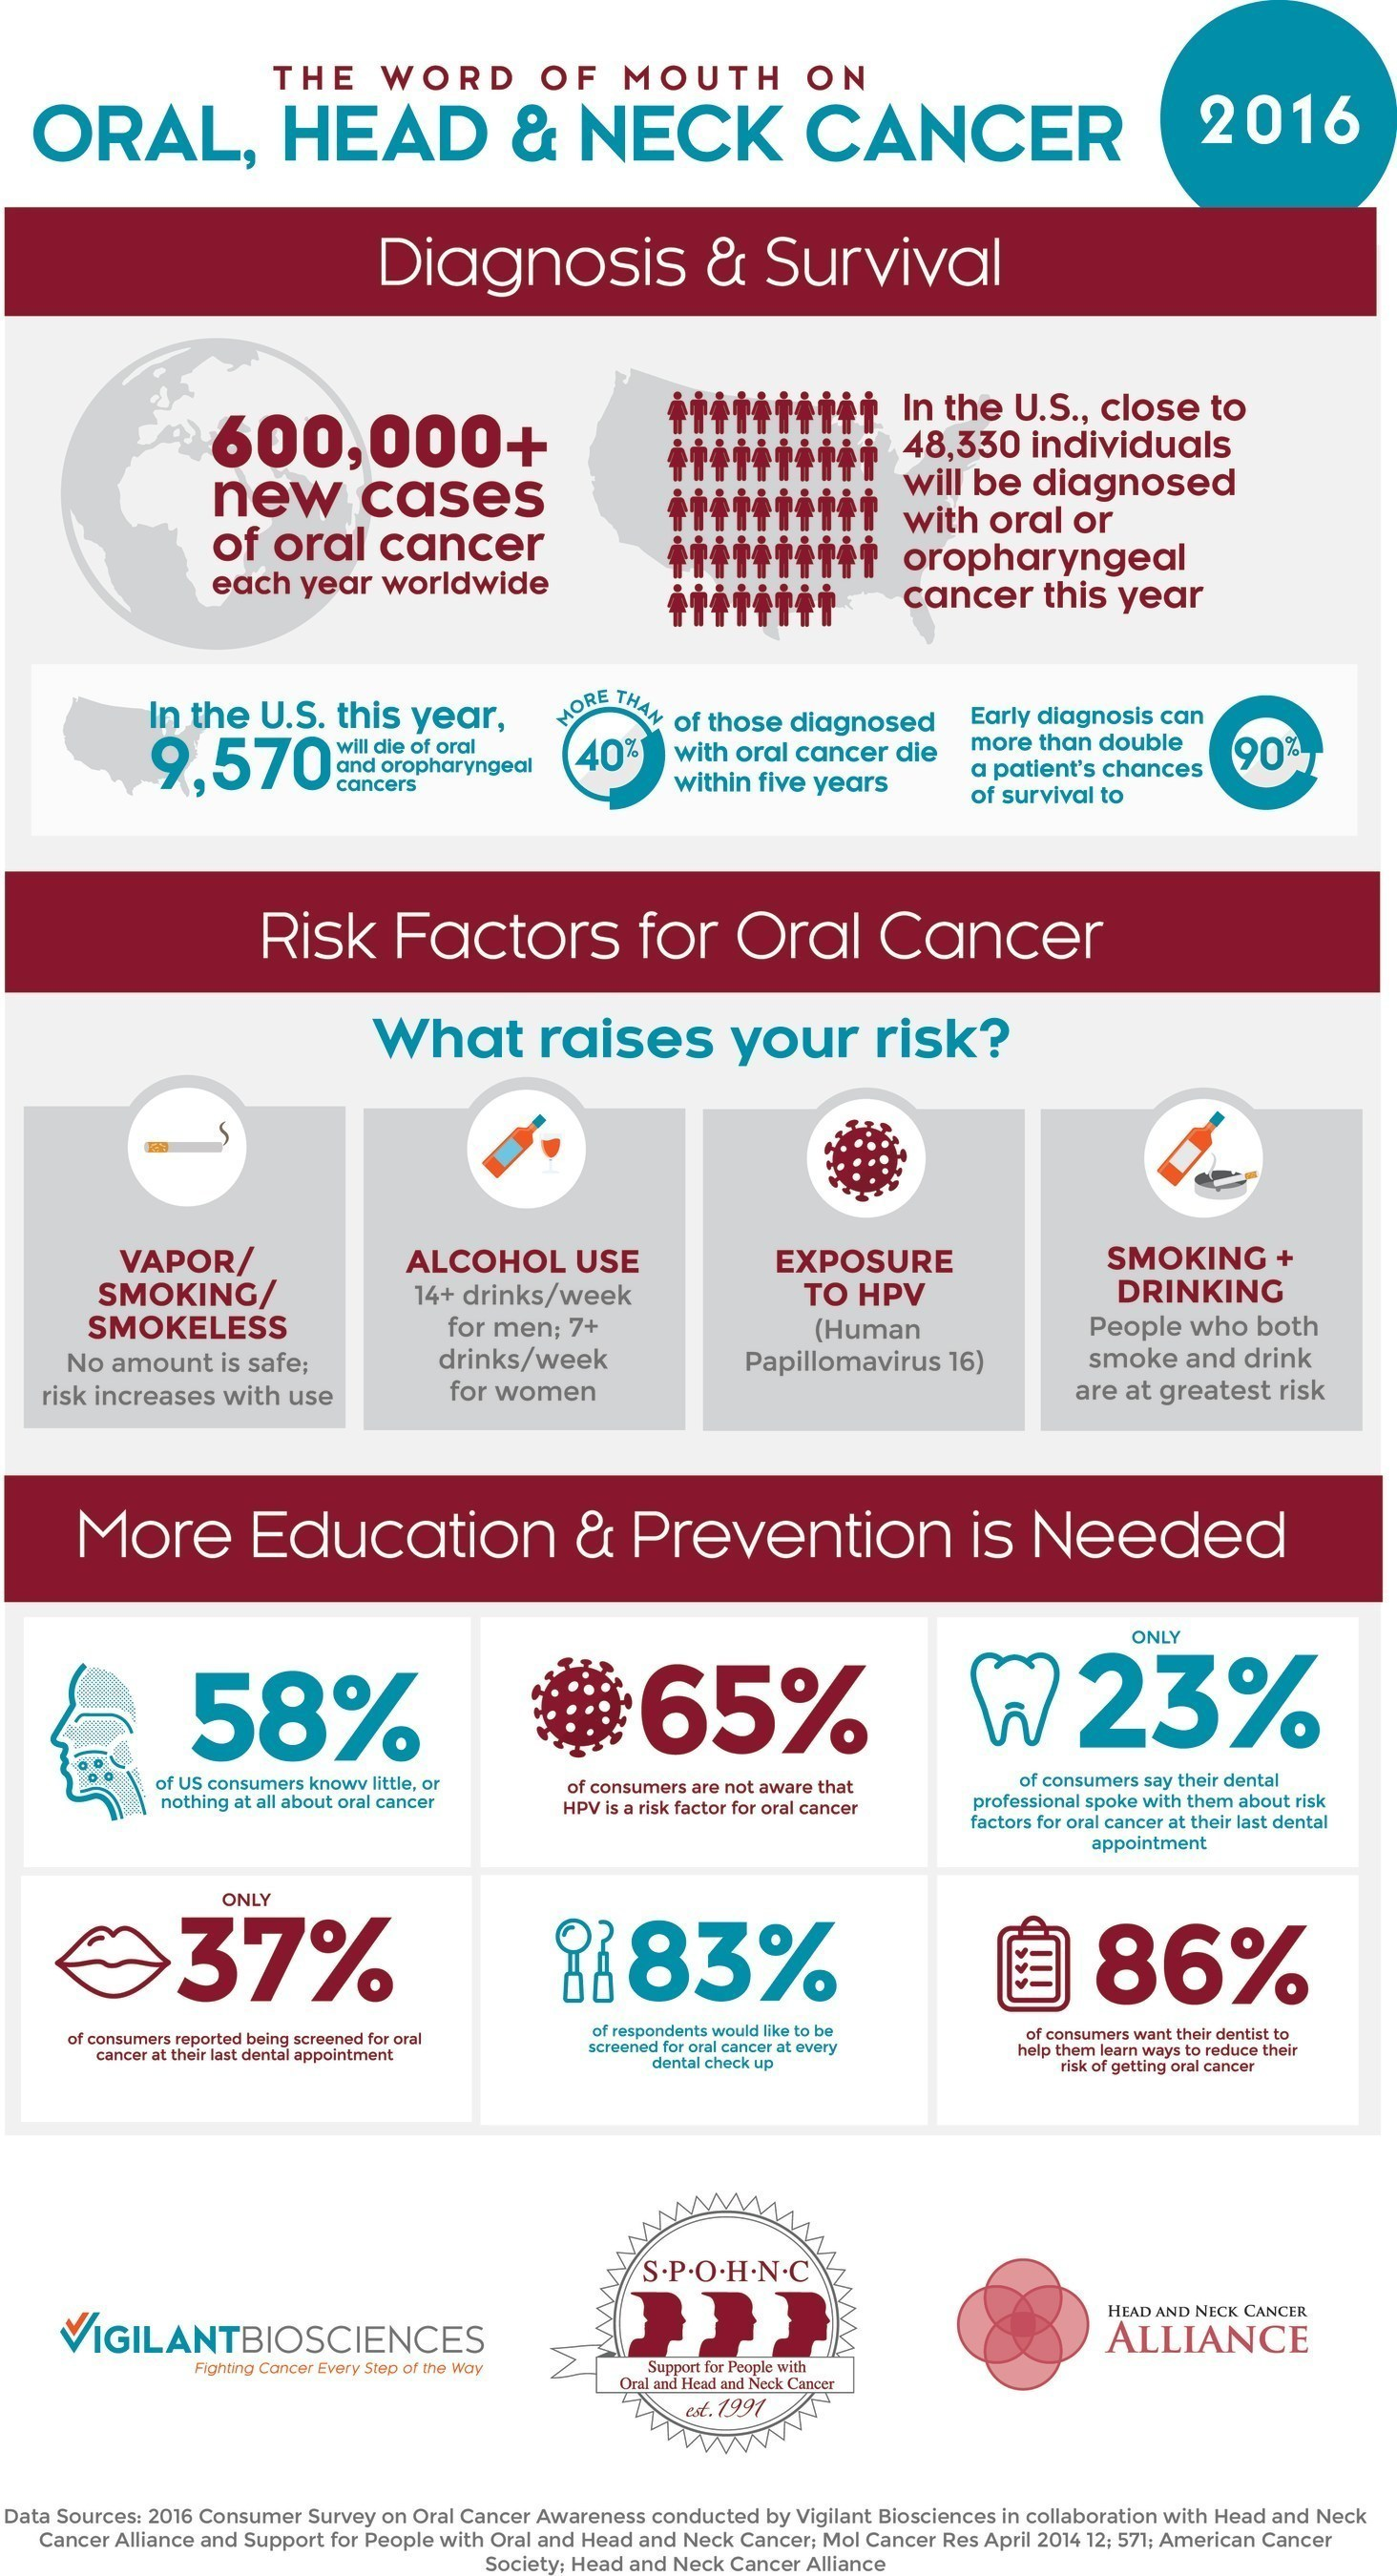 The Word Of Mouth on Oral, Head and Neck Cancer 2016, by Vigilant Biosciences in collaboration with Head and NeckCancer Alliance and Support for People with Oral and Head and Neck Cancer.